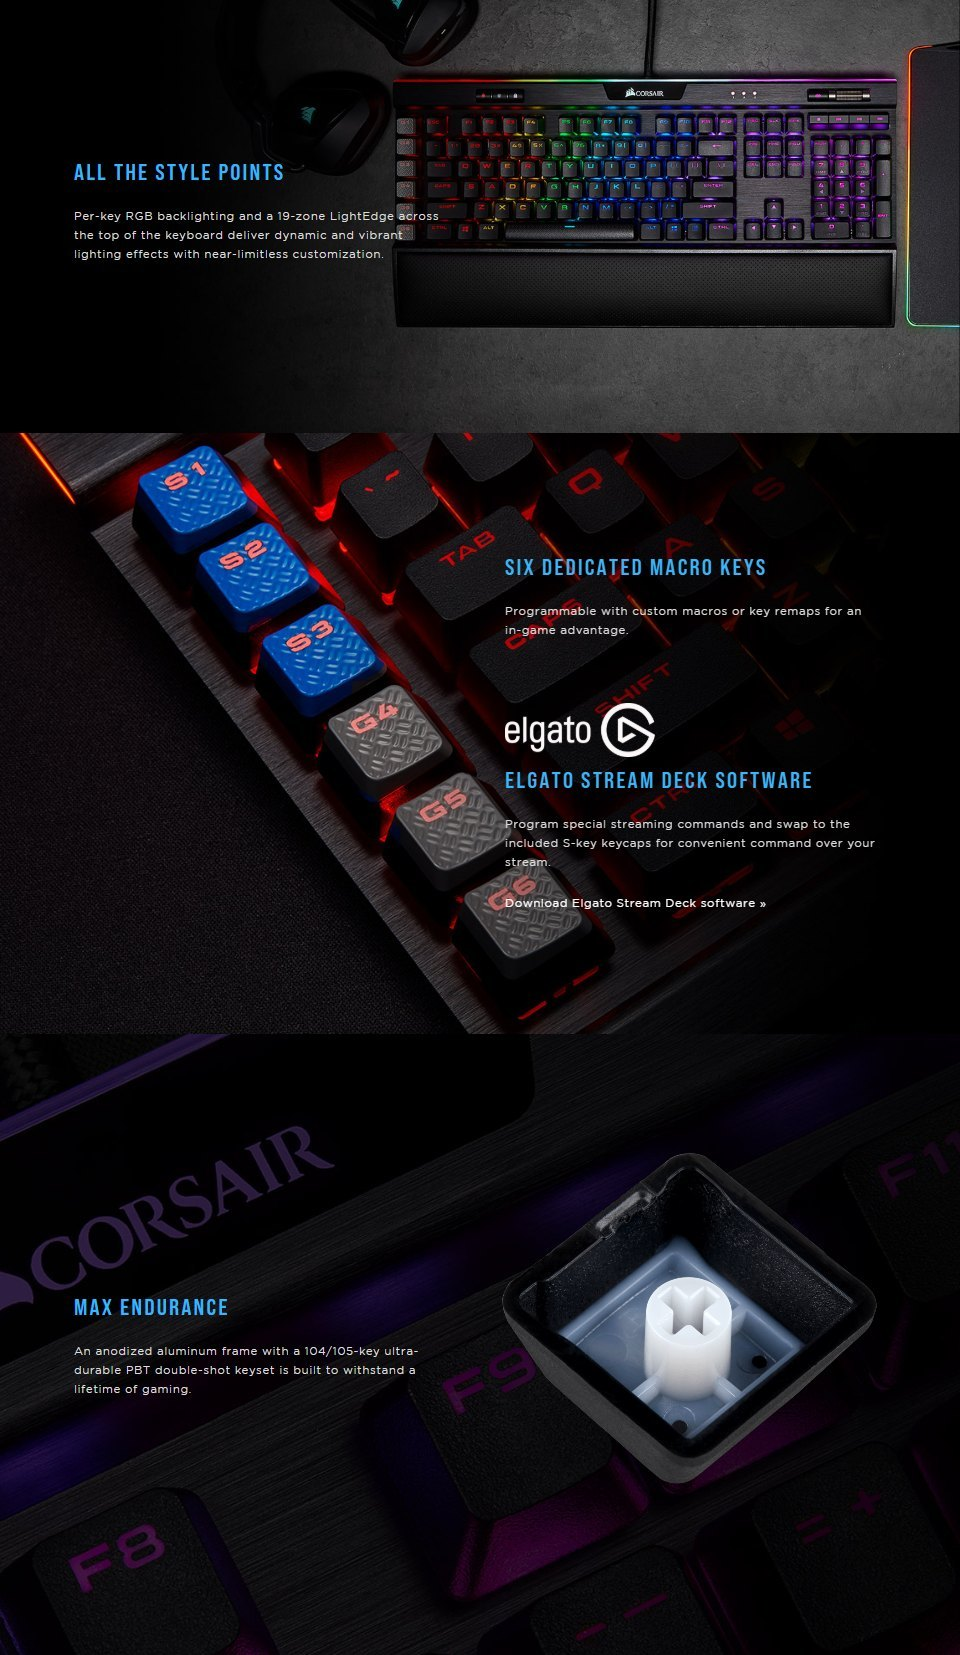 Corsair K95 Platinum XT RGB Mech Keyboard Cherry MX Brown features